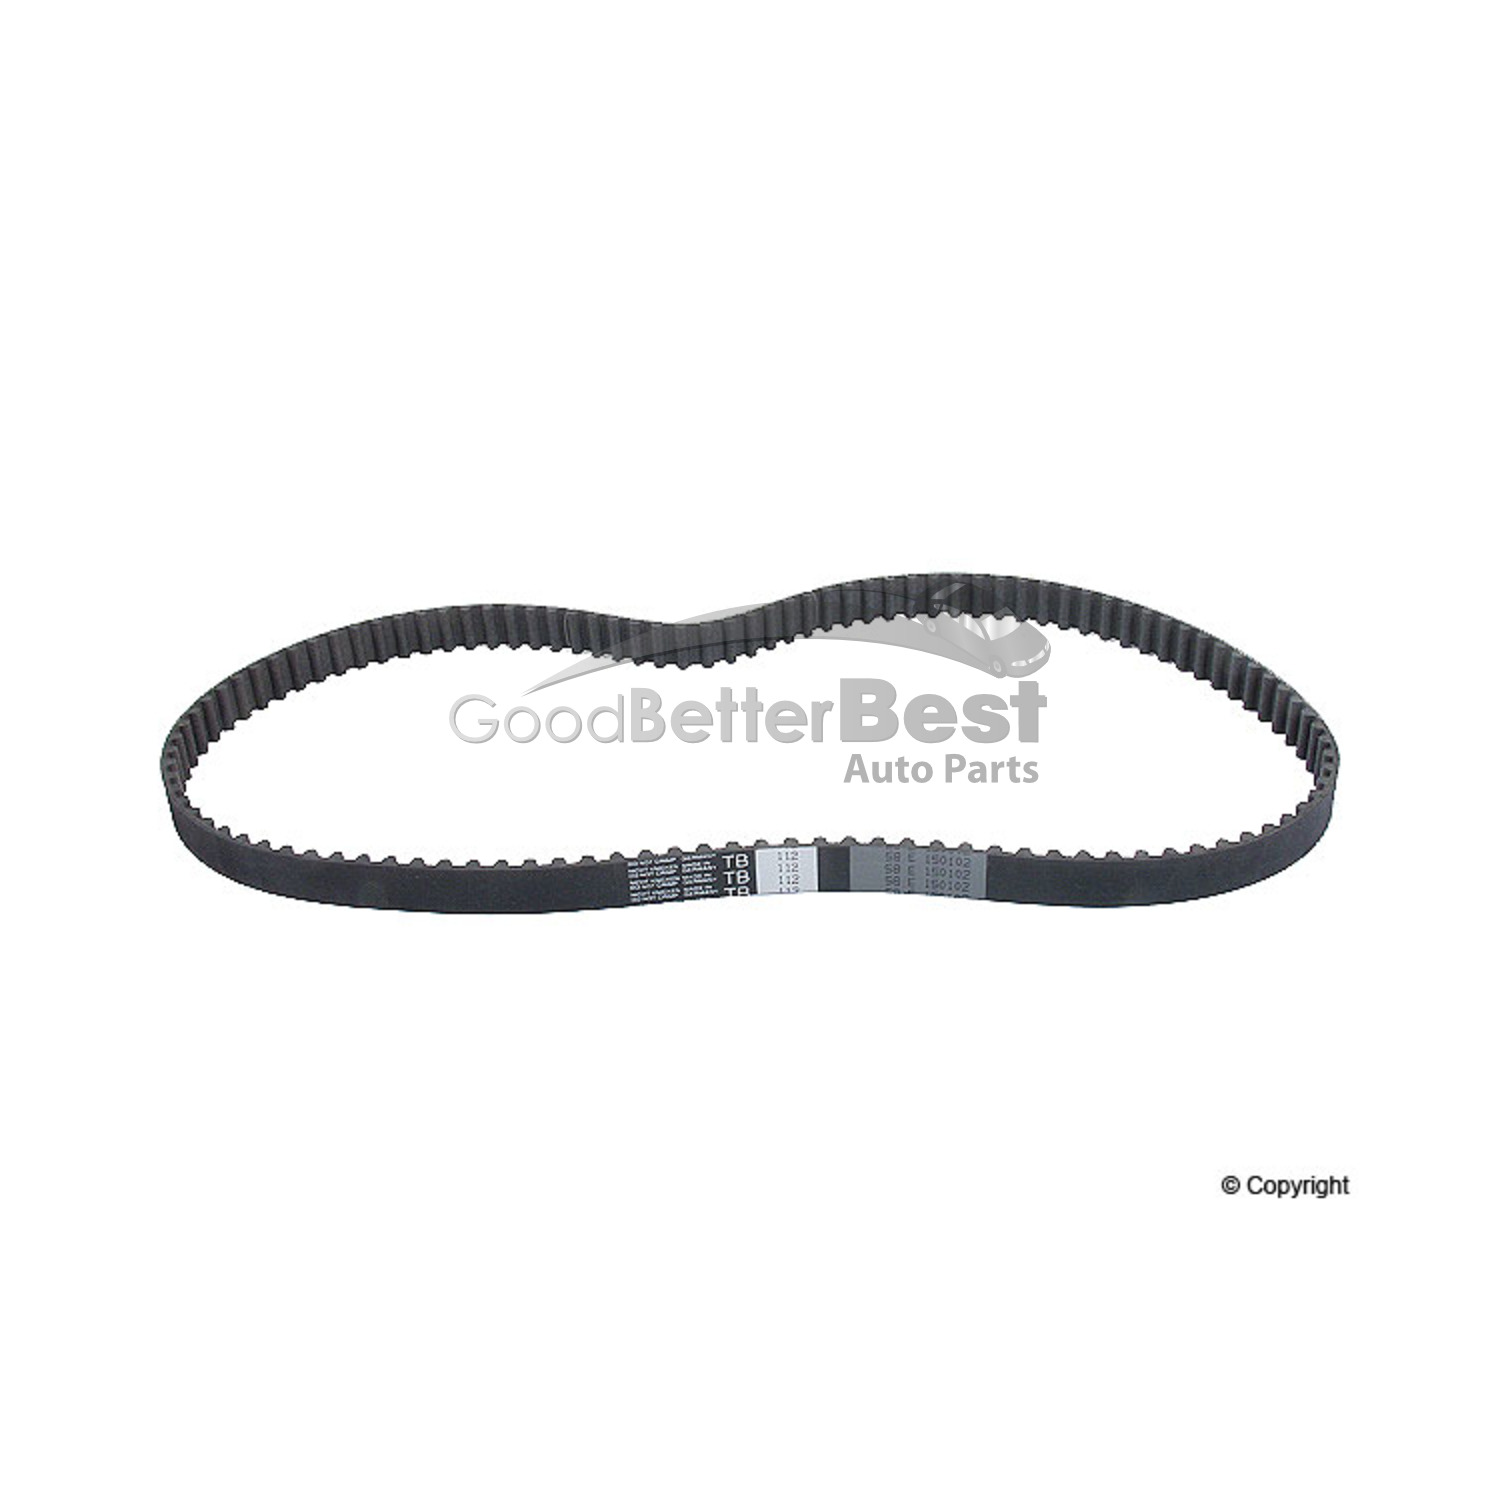 hight resolution of details about new bando engine timing belt tb112 geo toyota prizm corolla mr2